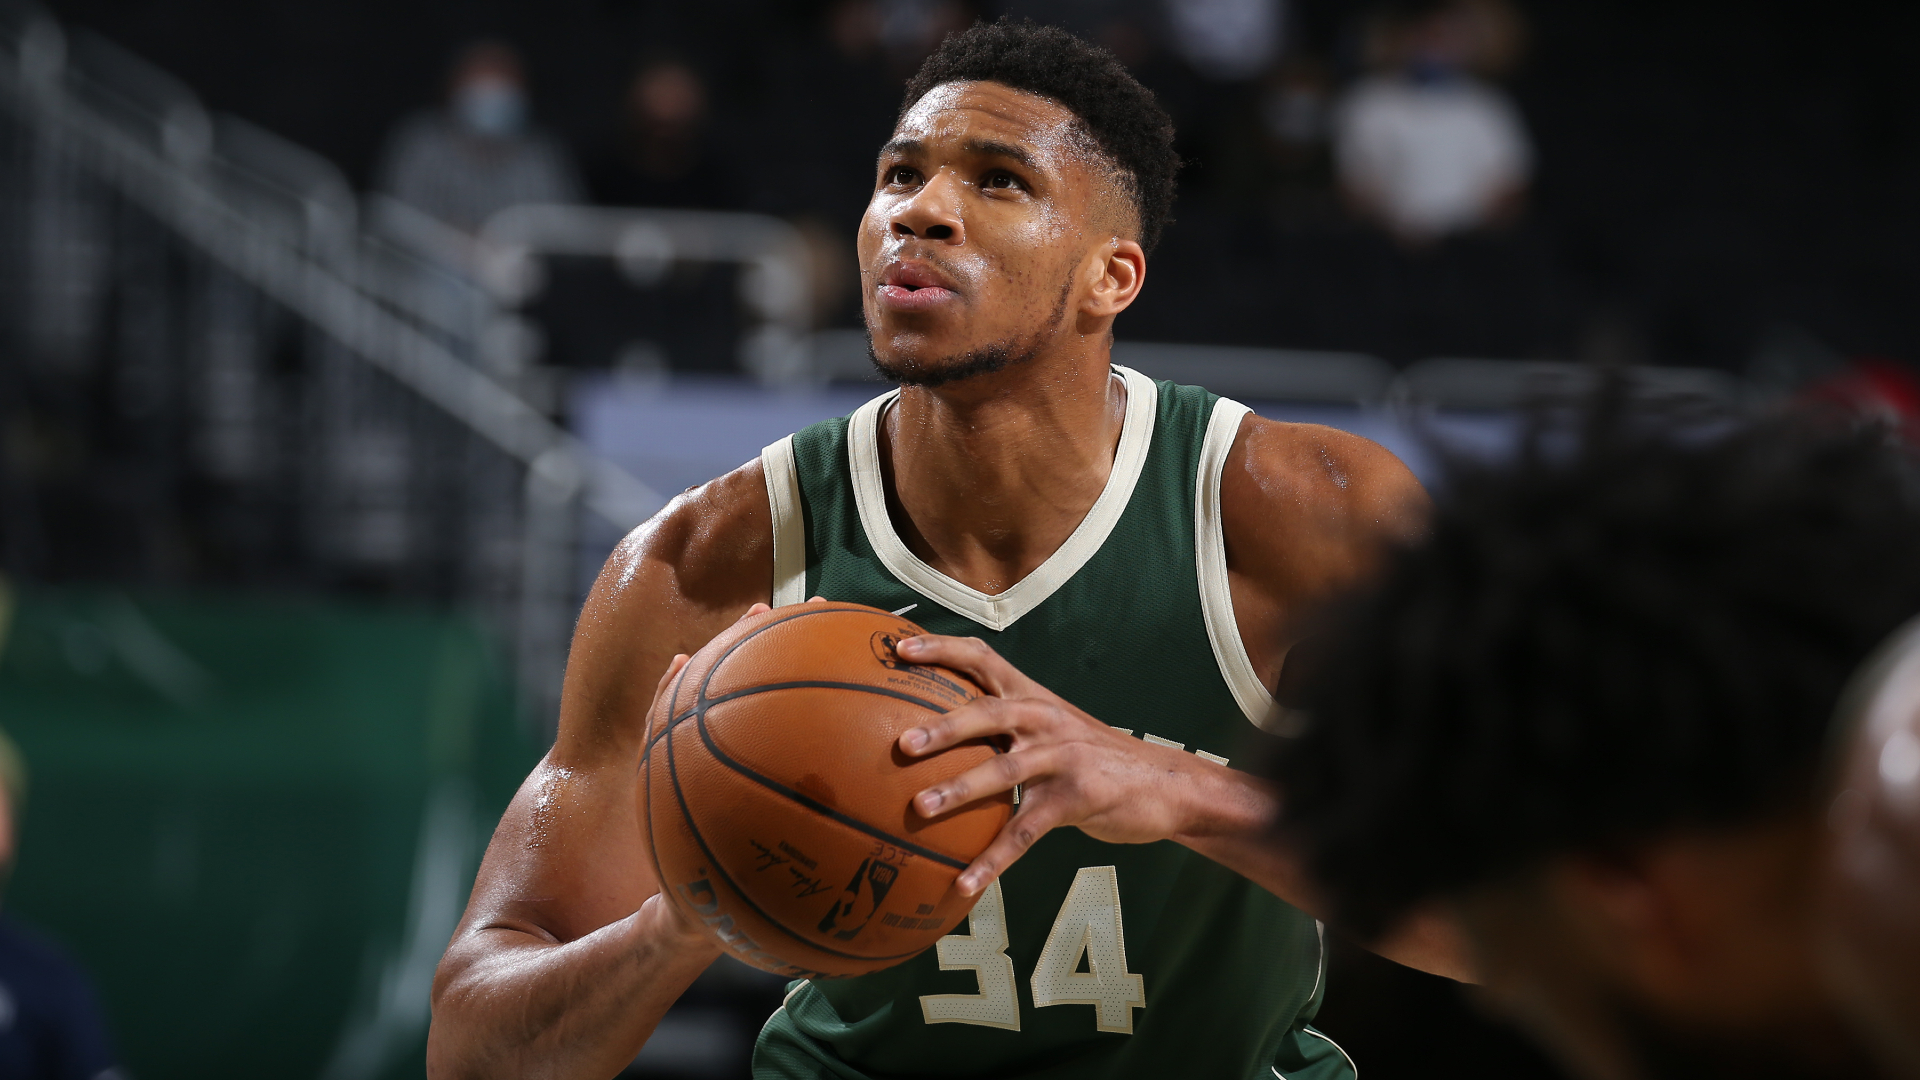 Giannis Antetokounmpo was proud of his link-up with Khris Middleton after they posted a 31-year best in the NBA against the Kings.